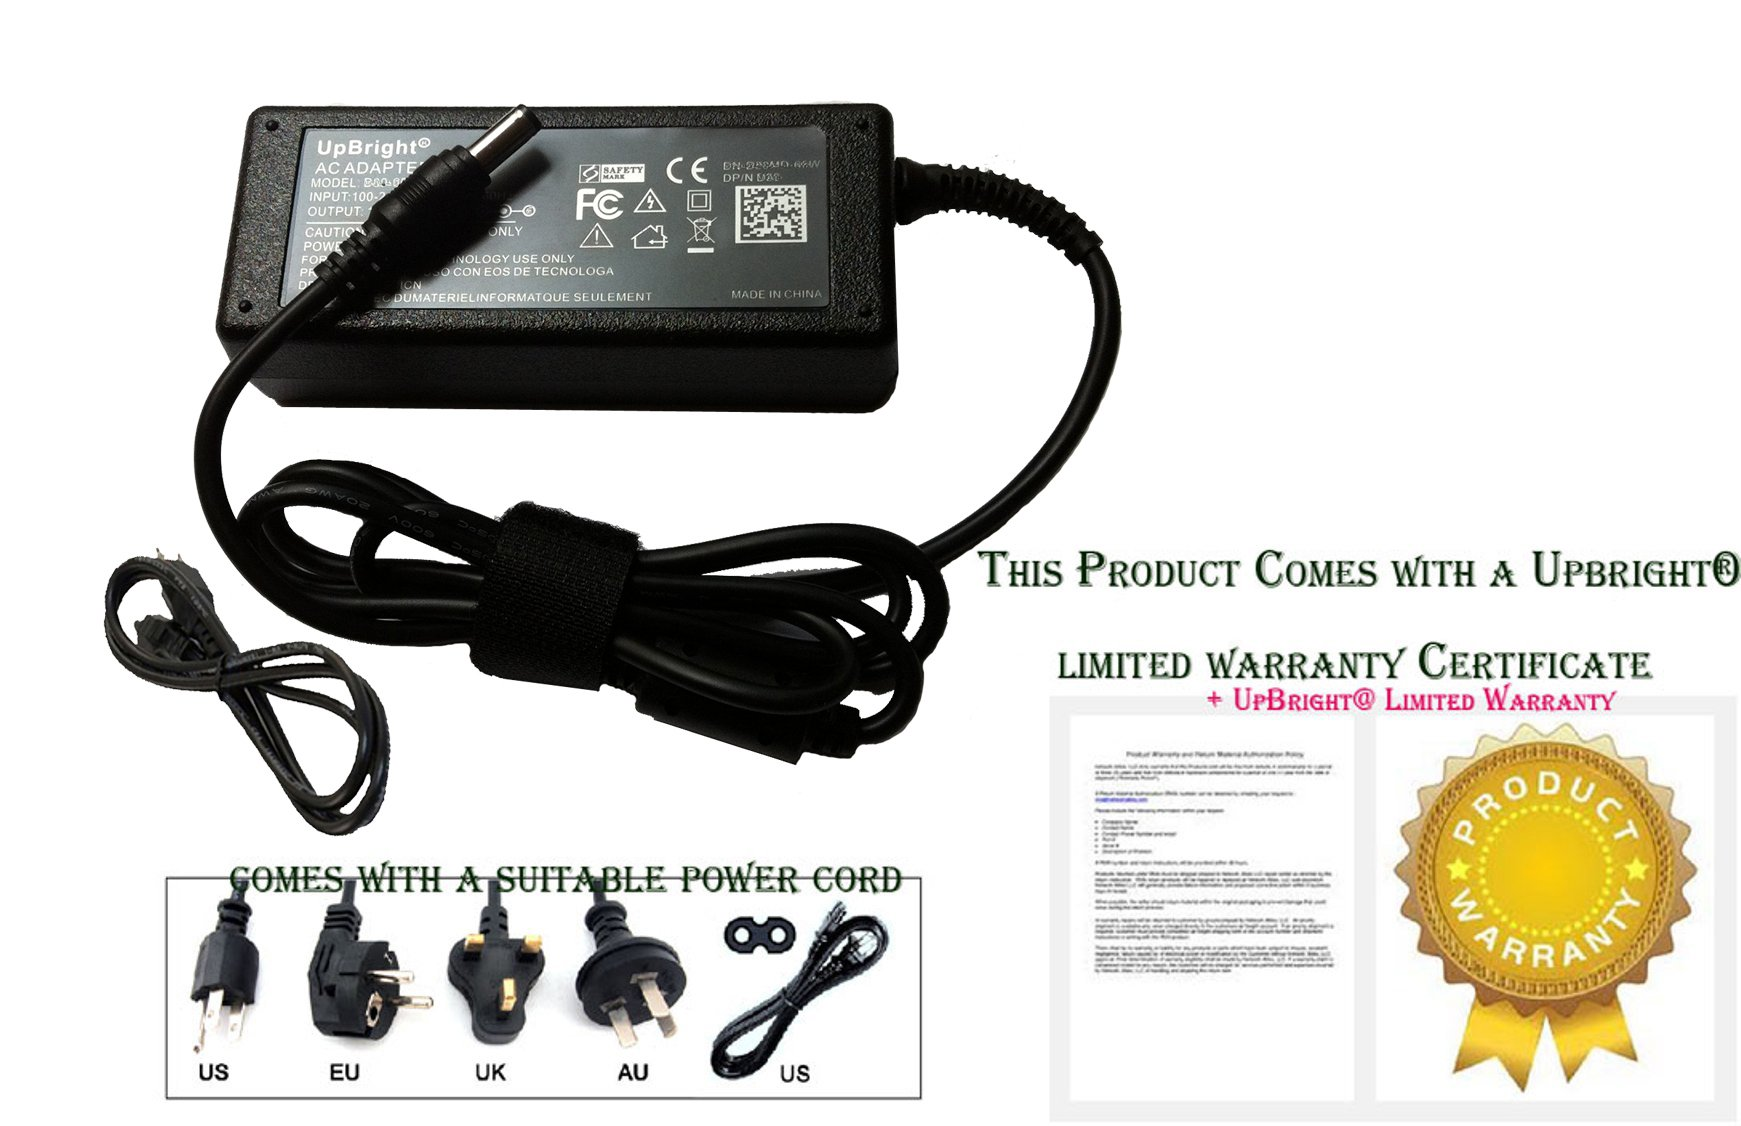 UpBright New Global AC / DC Adapter For Kodak ESP C315 ESP 2150 ESP2150SE ESPC315 ESP2150 All-In-One Printer Power Supply Cord Cable Charger Mains PSU